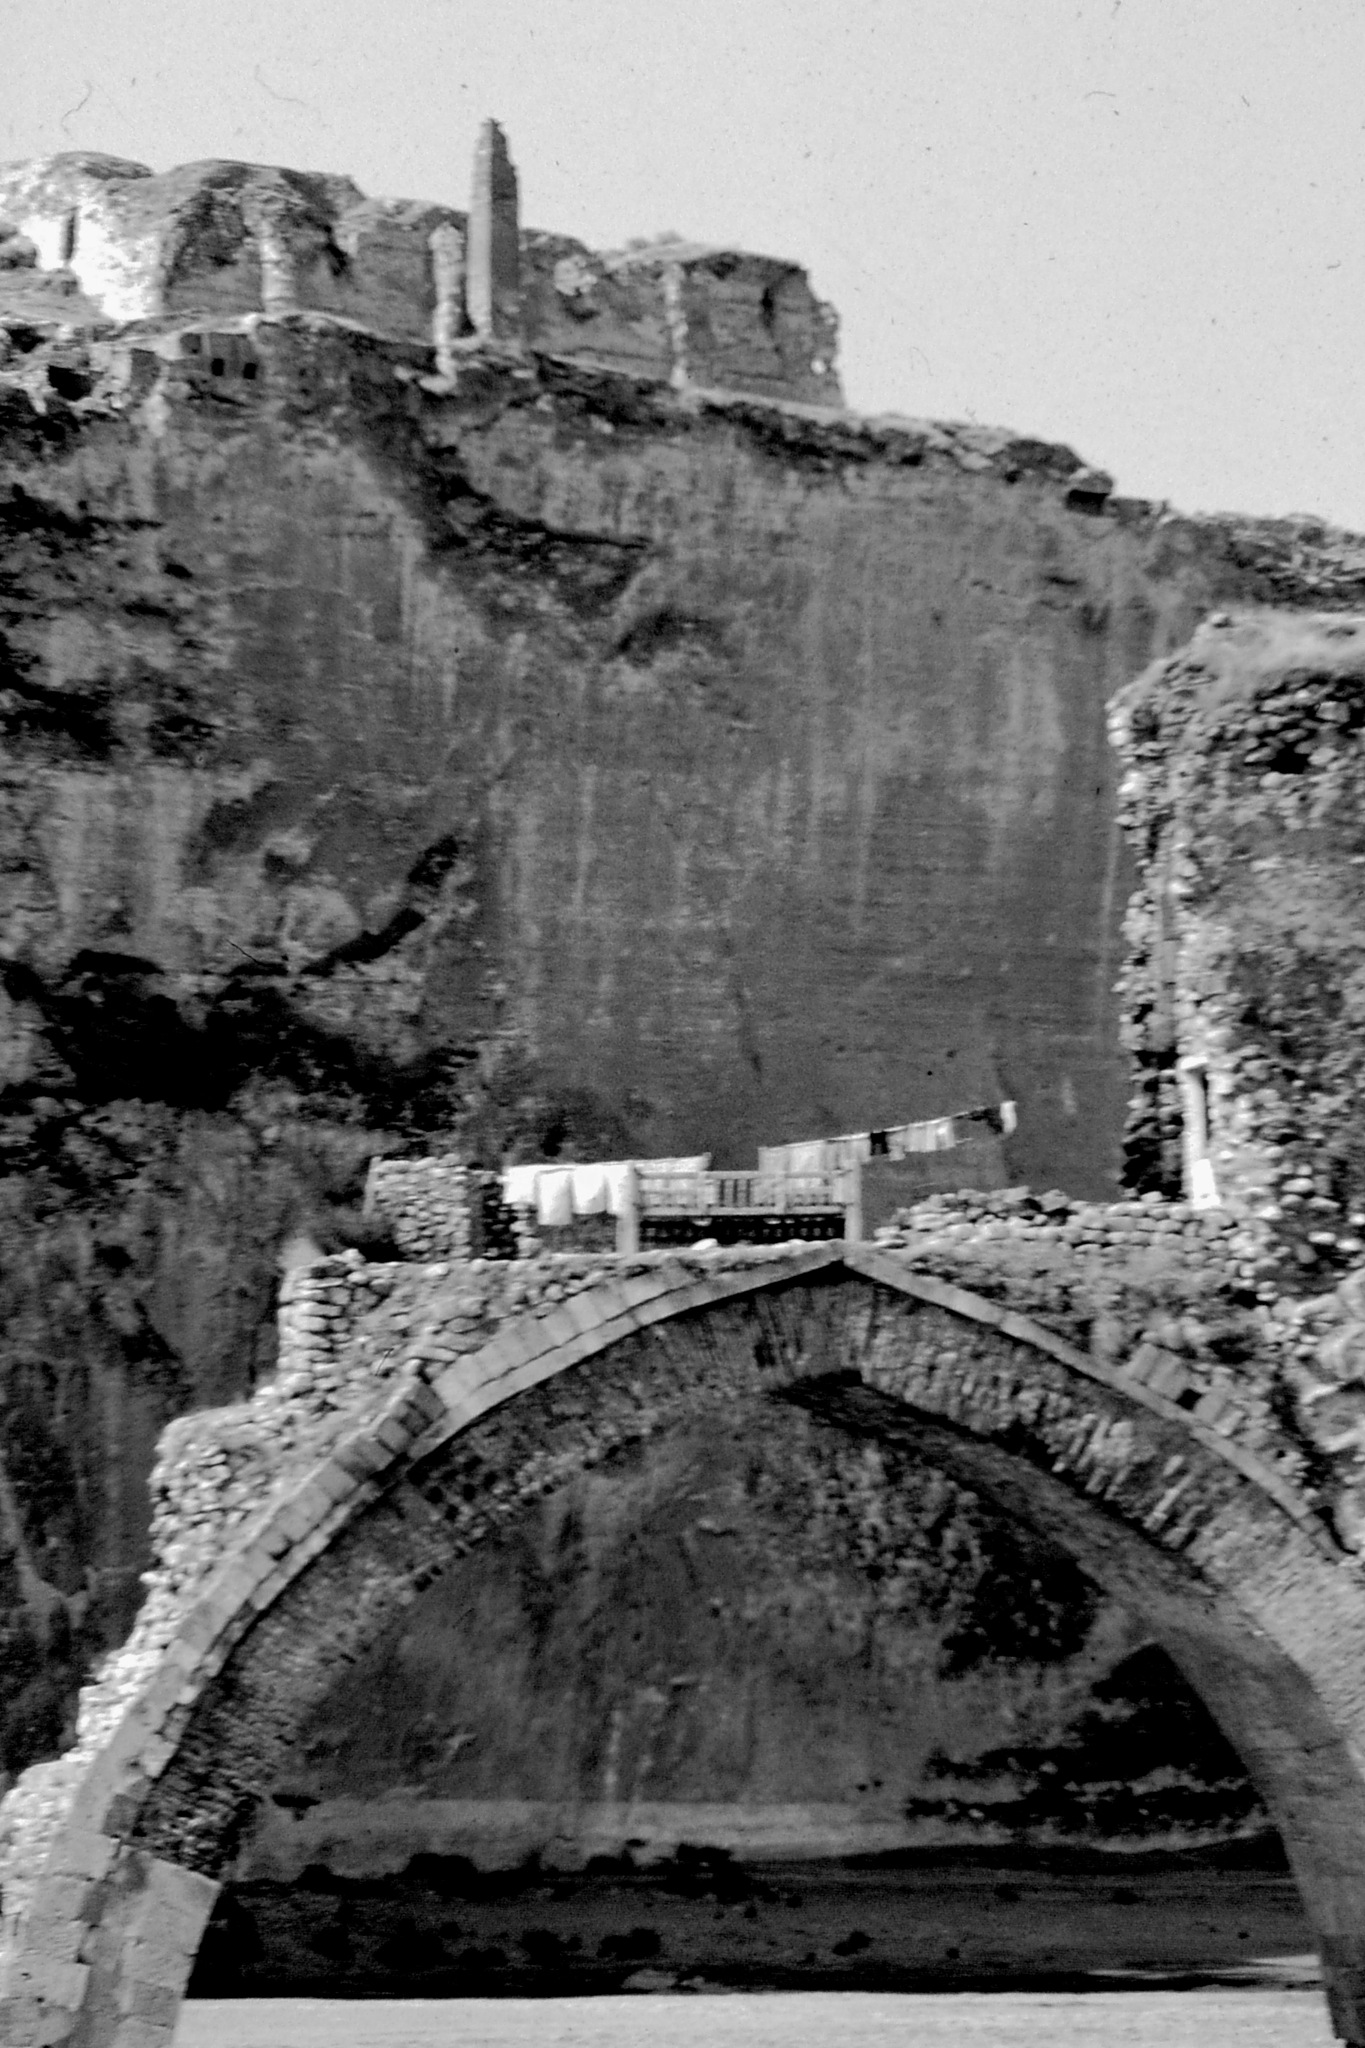 RUINS OF THE OLD BRIDGE OVER TIGRIS, B&W by Akin Saner